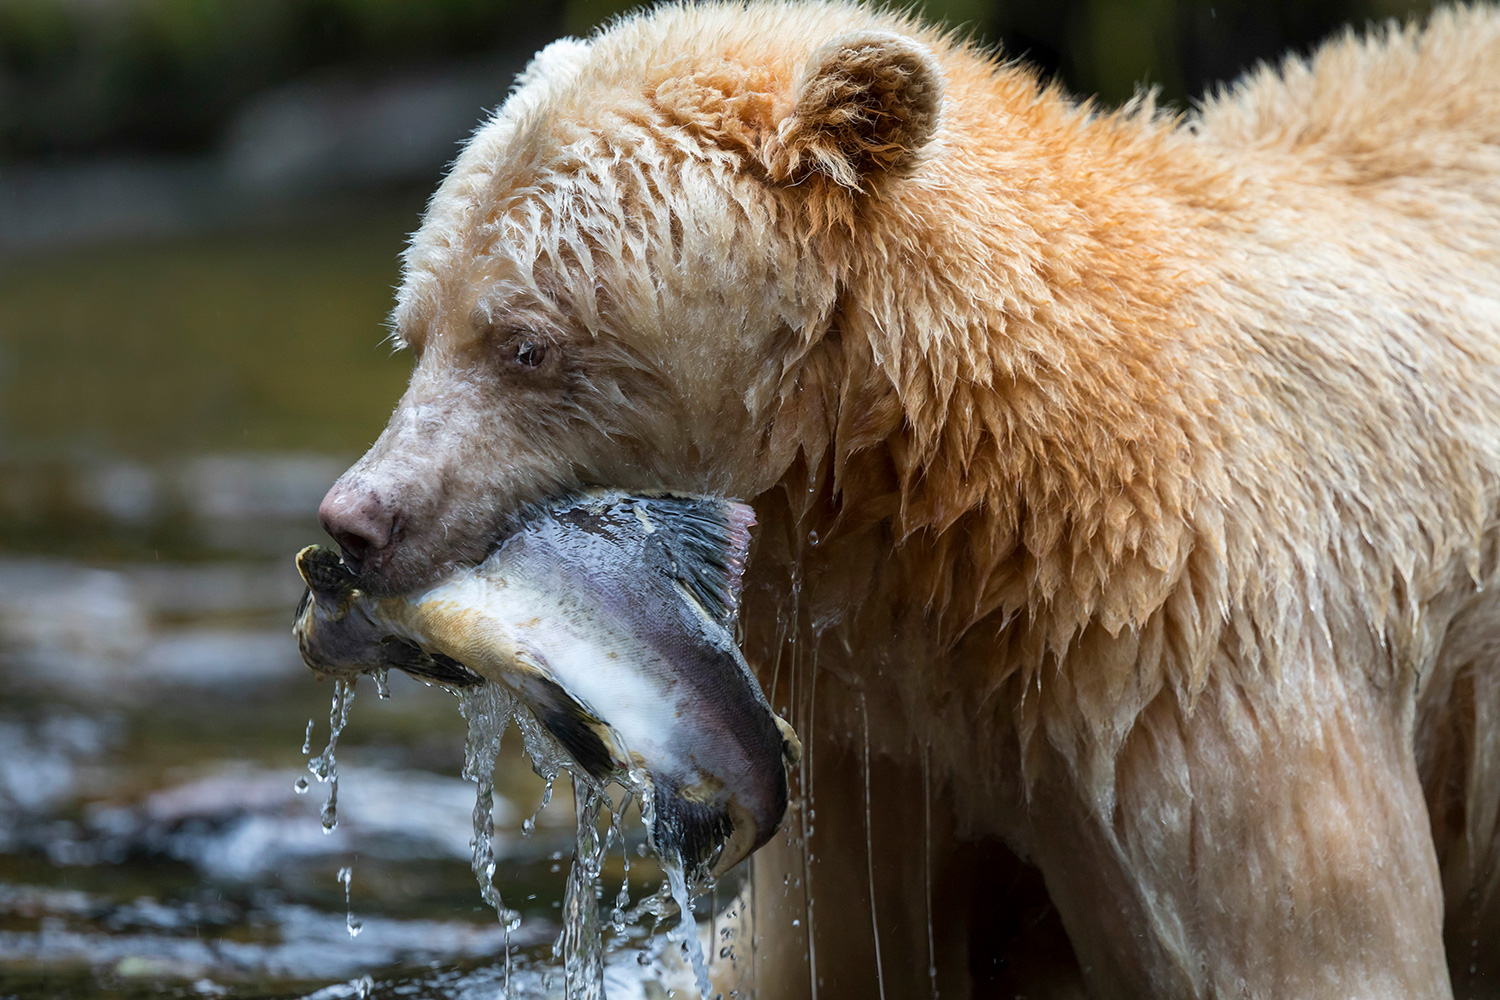 "PIC BY Steven Rose / CATERS NEWS (PICTURED a spirit bear in British Columbia, Canada ) A rare bear bear has been caught fishing for his dinner in a shallow river. Steven Rose, 63, captured the white bear - known as a spirit bear - while visiting the Great Bear Rain Forest in British Columbia, Canada, which is thought to be the only place in the world where these animals can be pictured. His images, taken last October, show the bear successfully hunting for fish across the river. Steven, a Canadian photography guide, said: ""The bears can be seen cleverly digging up the eggs laid by the salmon by clawing away the sand on the riverbed to expose the eggs, then gulping them up. ""I have clients who have gone on trips in previous years and not seen one during the whole week they were there. I am a lucky guy to have been able to witness this."""